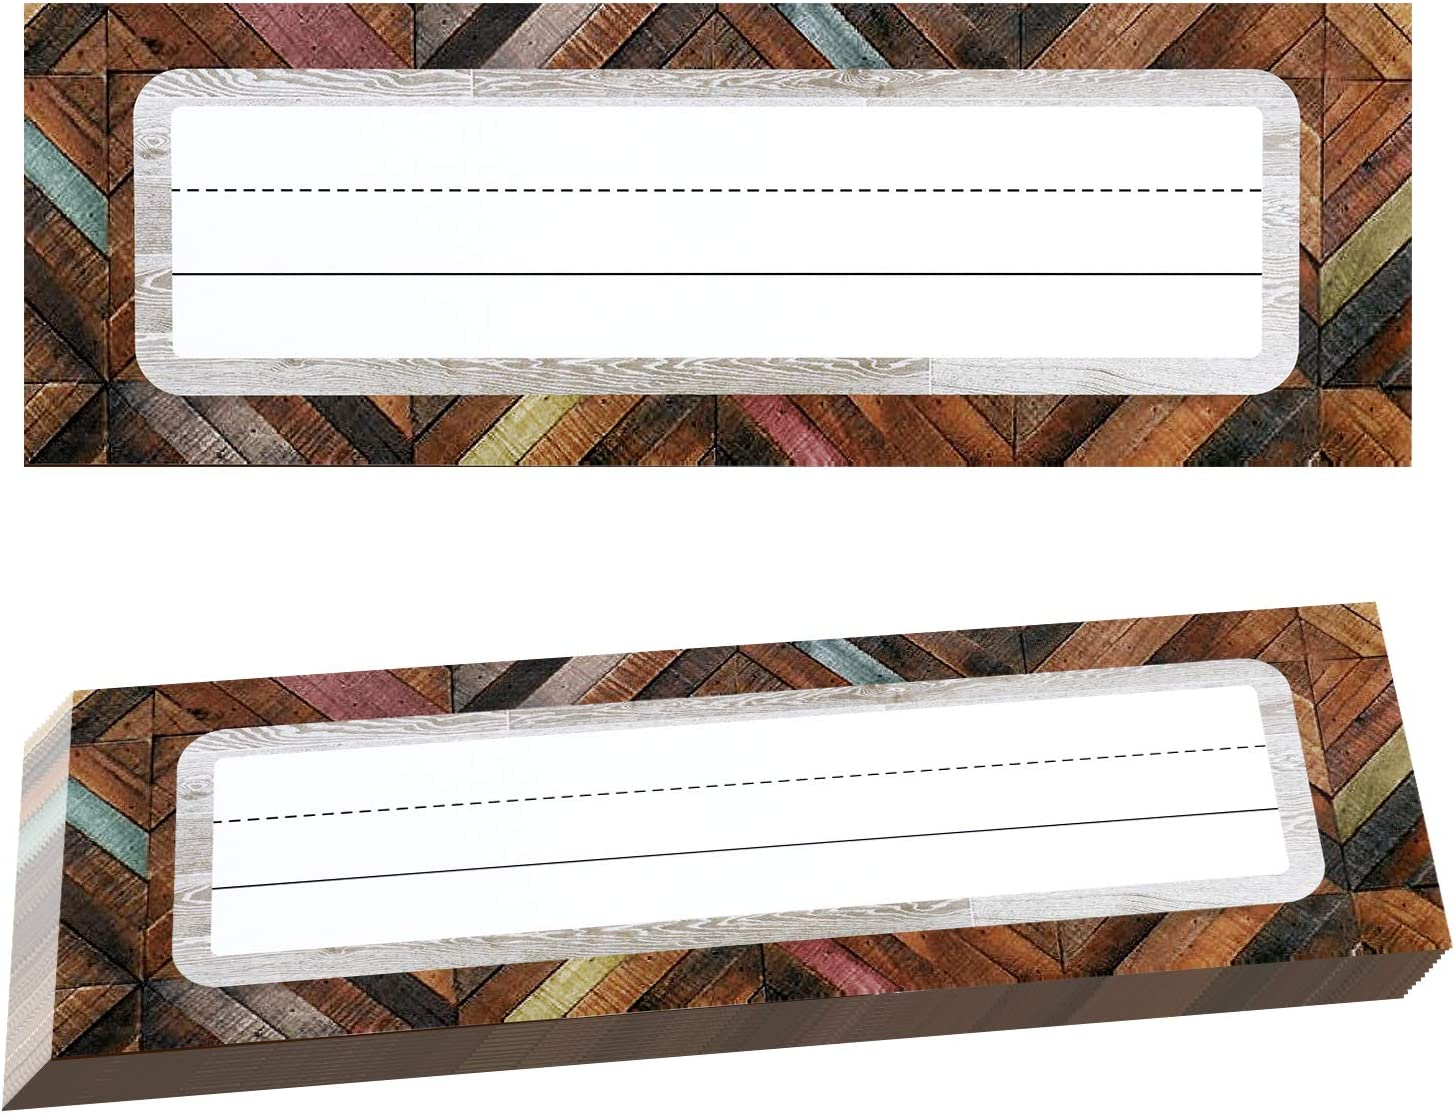 50 Pieces Wood Name Tags Home Sweet Classroom Name Plates Industrial Chic Shiplap Nameplates for Students Teachers School Classroom Supplies